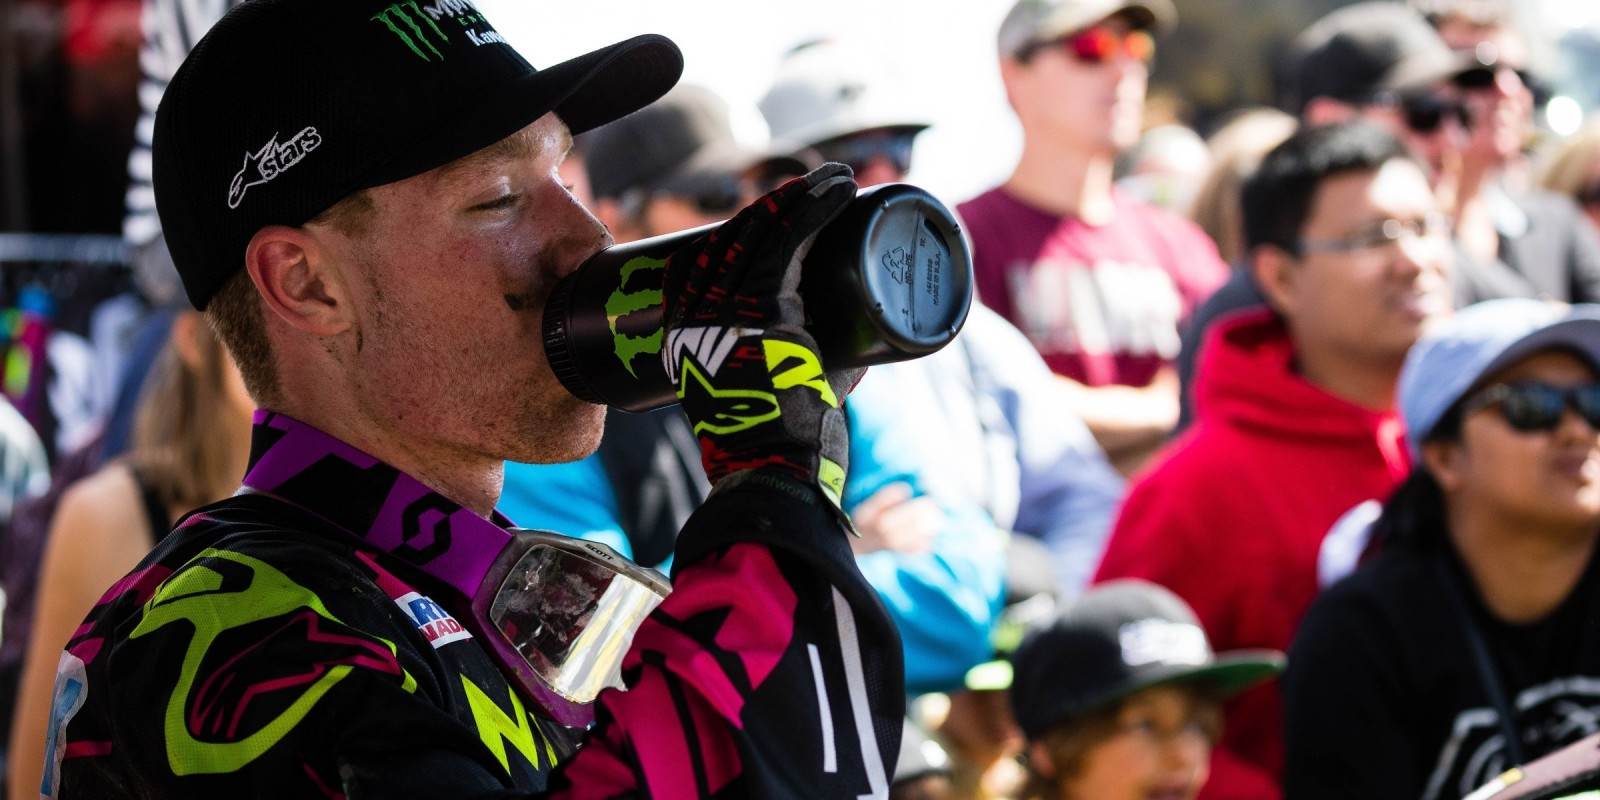 Lifestyle and action shots from the MX Nationals in Calgary, Alberta.